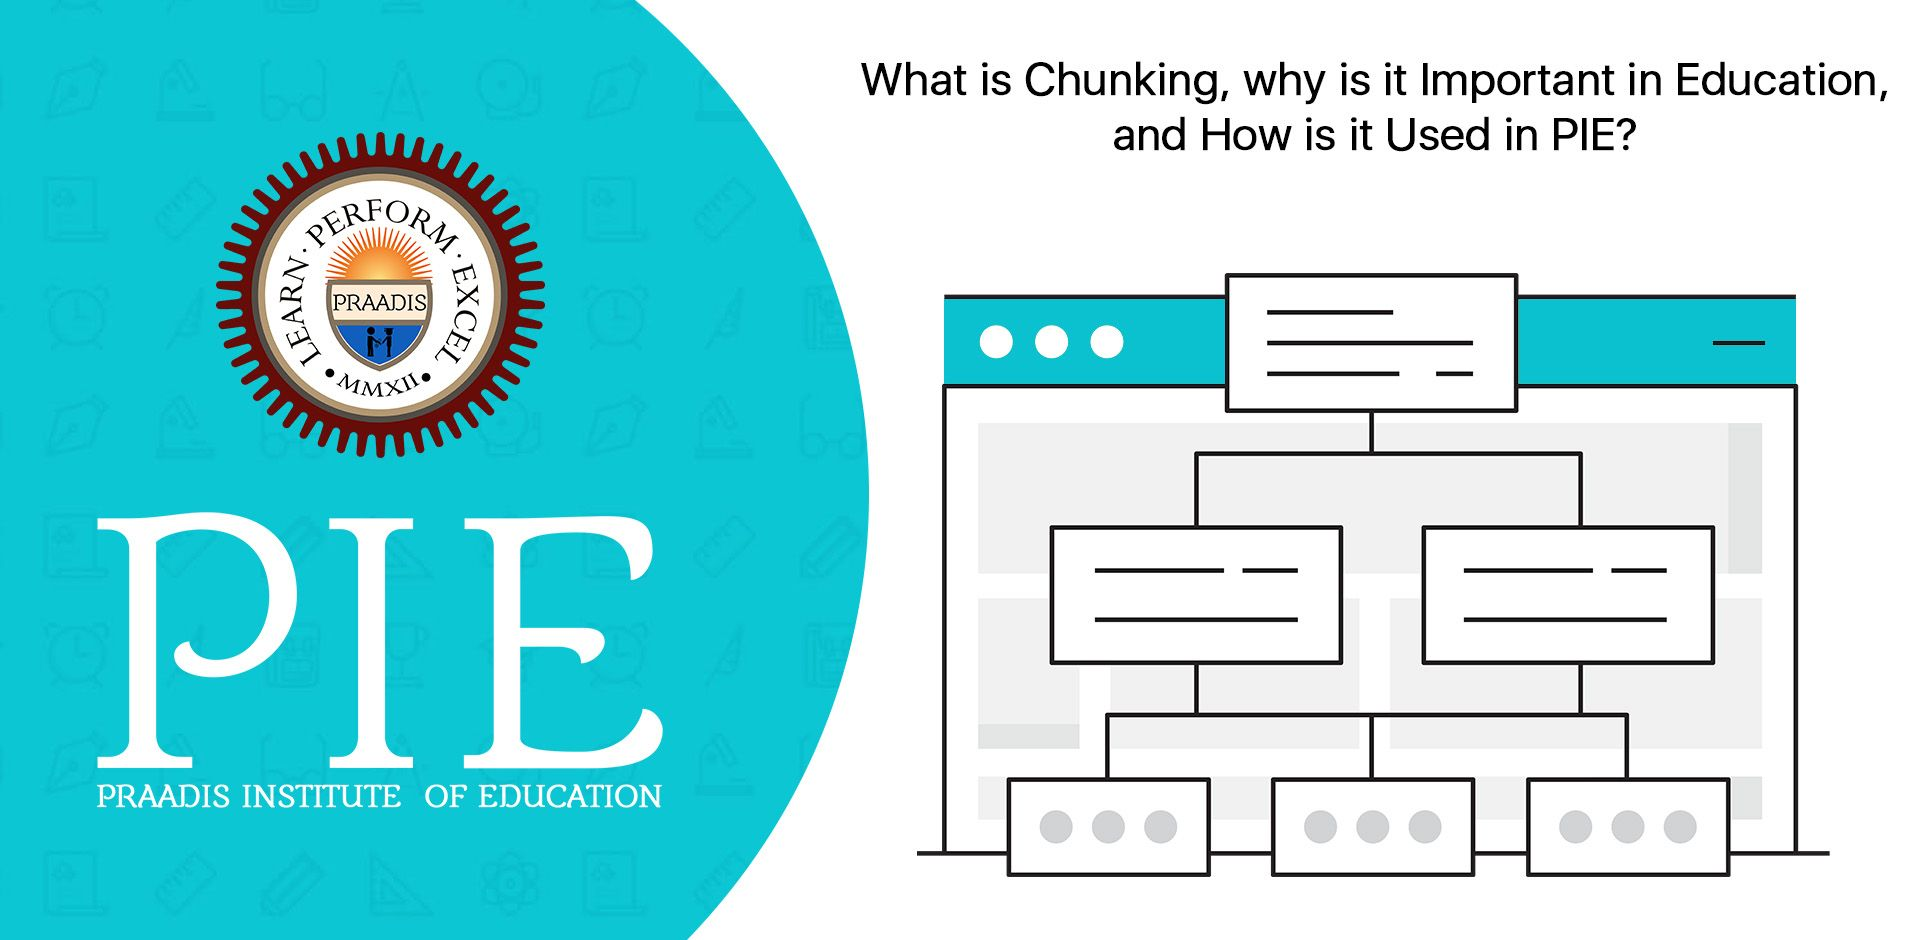 What is Chunking, why is it Important in Education, and How is it Used in PIE?